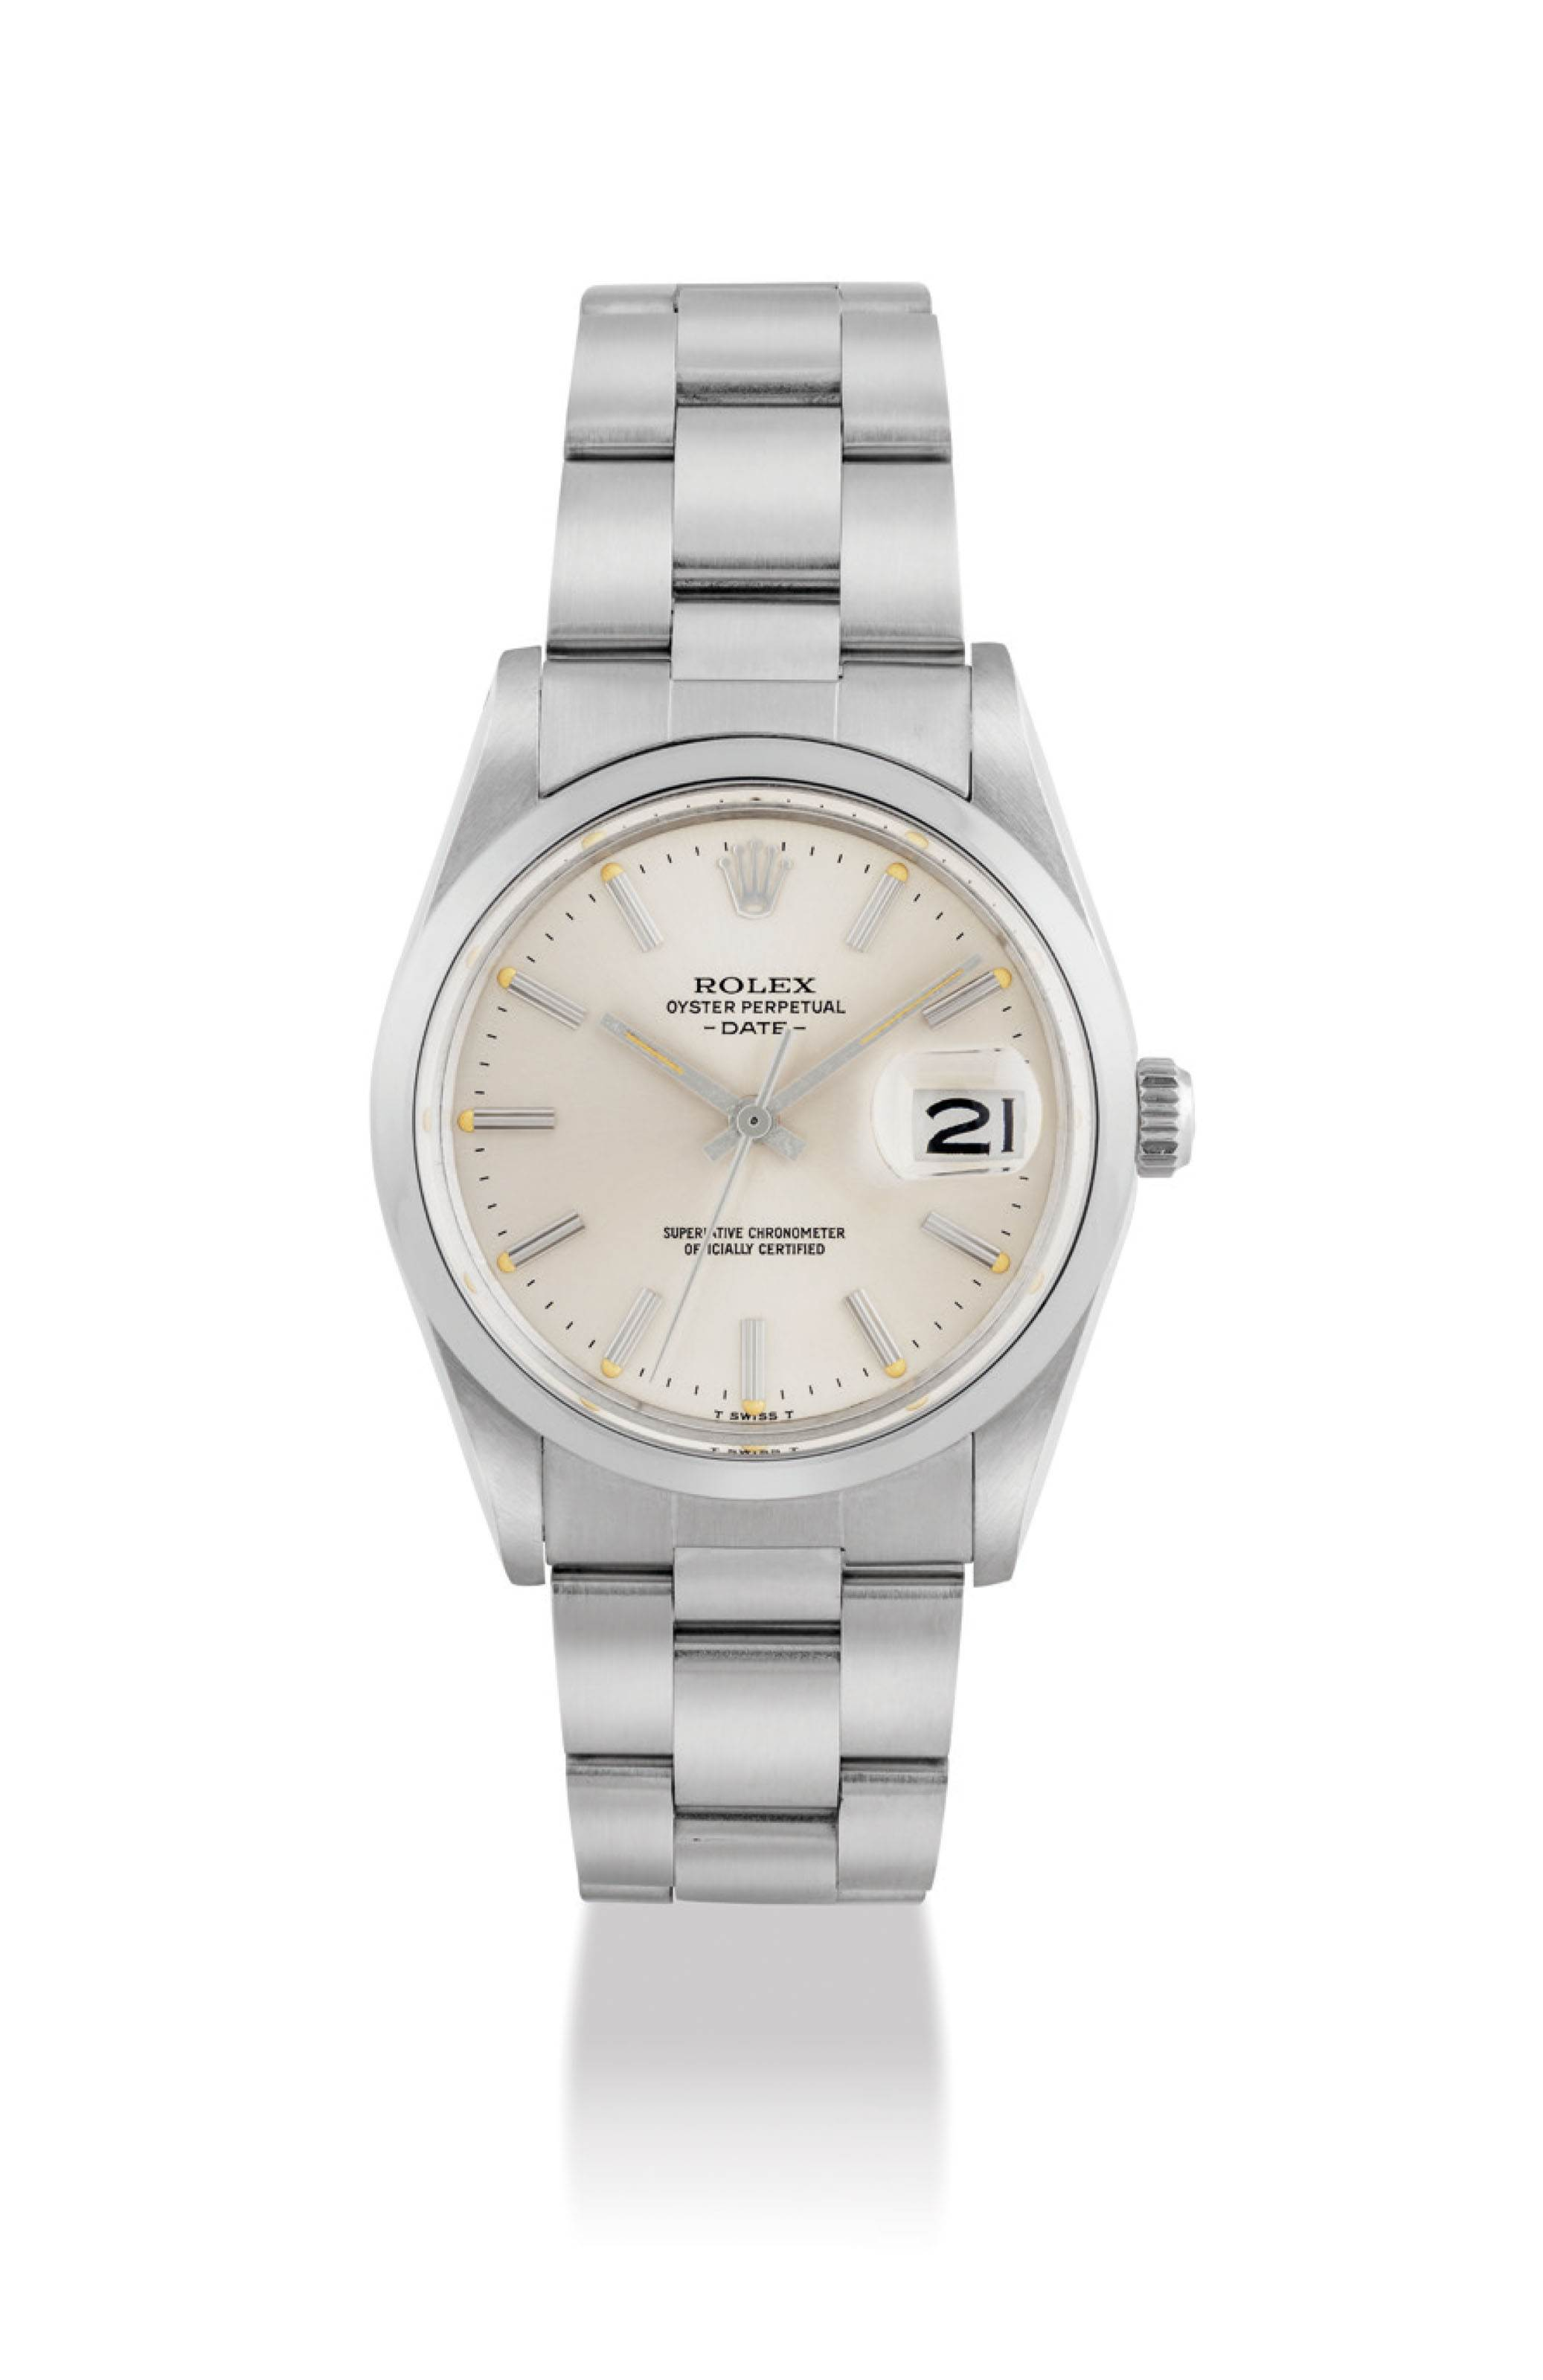 ROLEX. A STAINLESS STEEL AUTOMATIC WRISTWATCH WITH SWEEP CENTRE SECONDS...